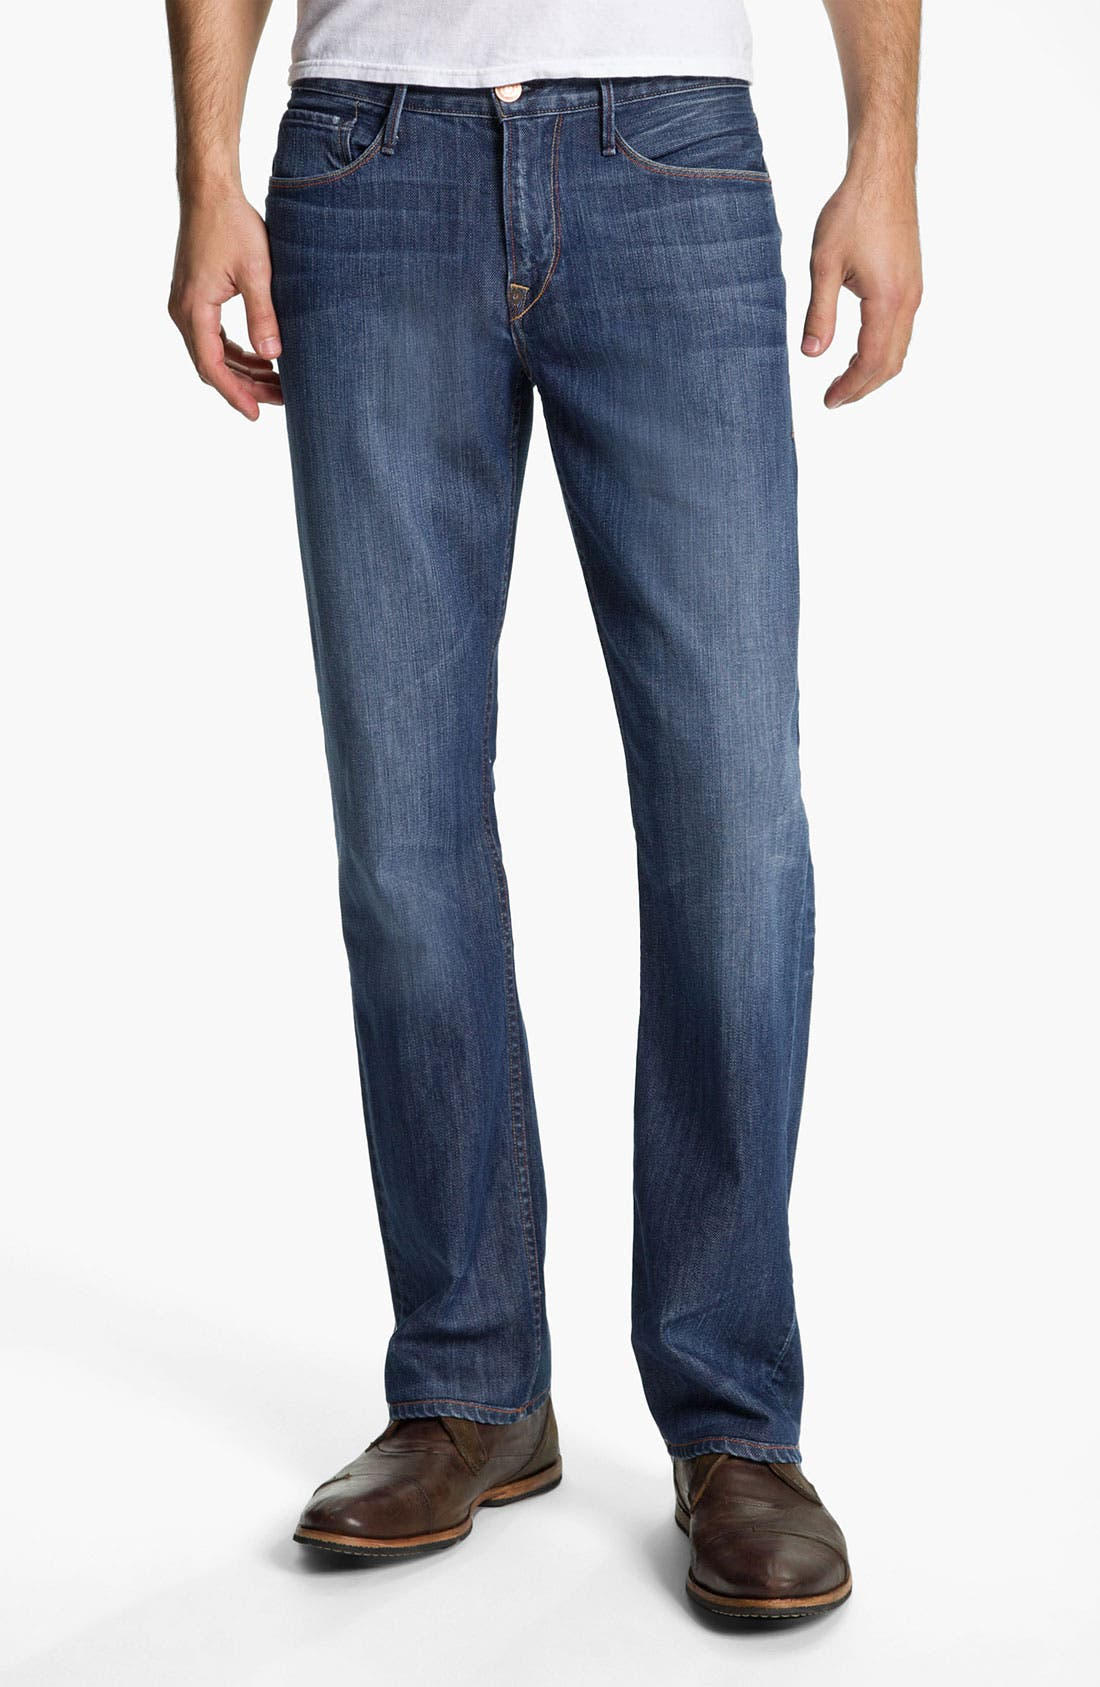 Alternate Image 1 Selected - Earnest Sewn 'Dexter' Relaxed Leg Jeans (Burton)